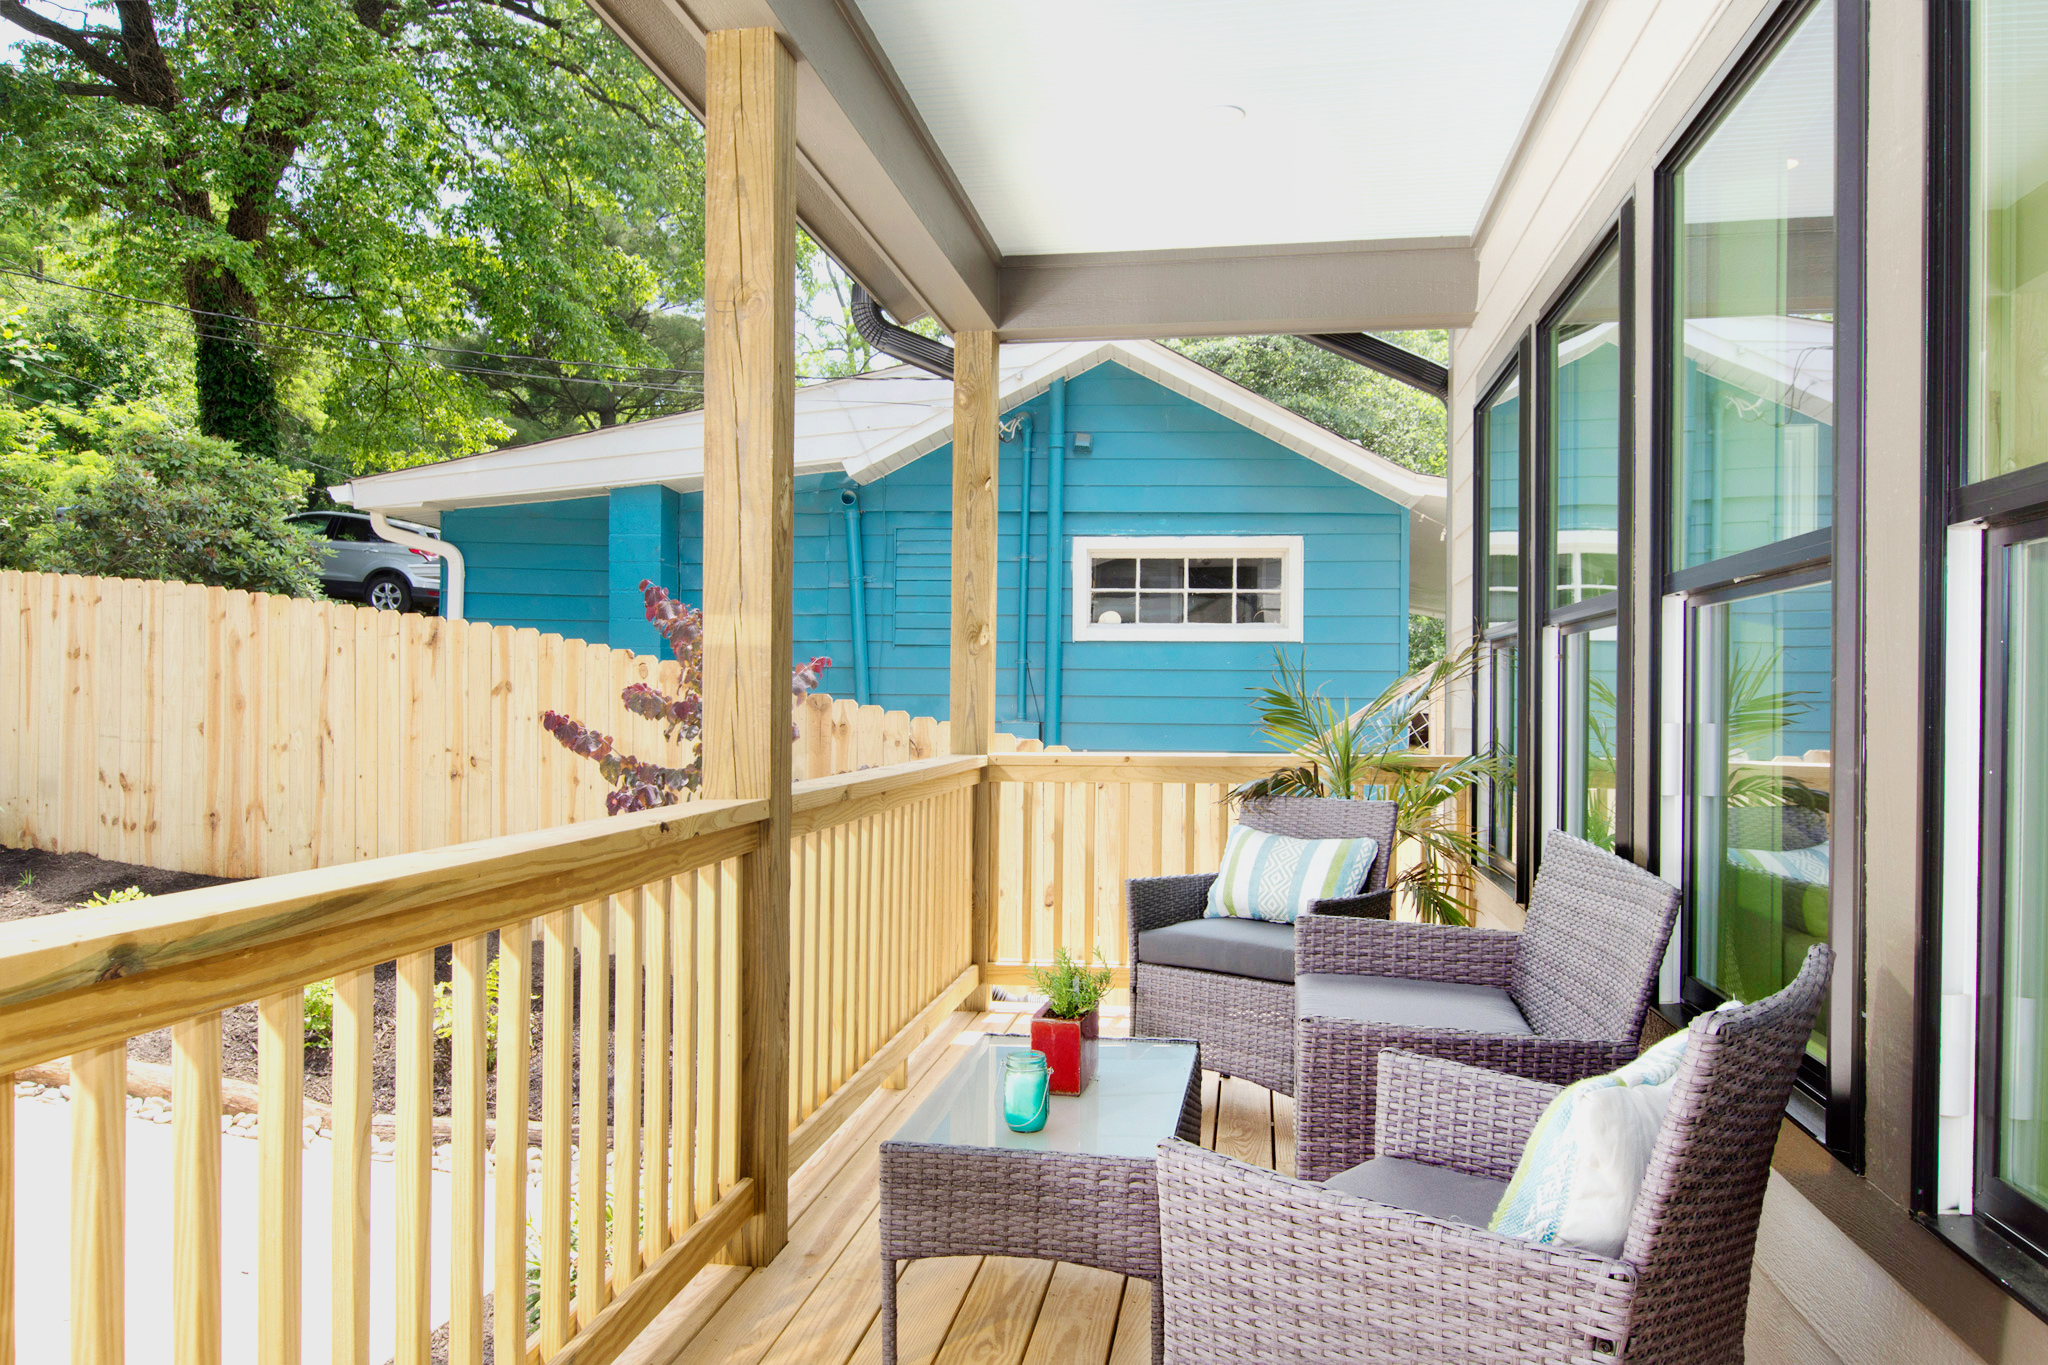 02_Large_covered_front_porch[1].jpg